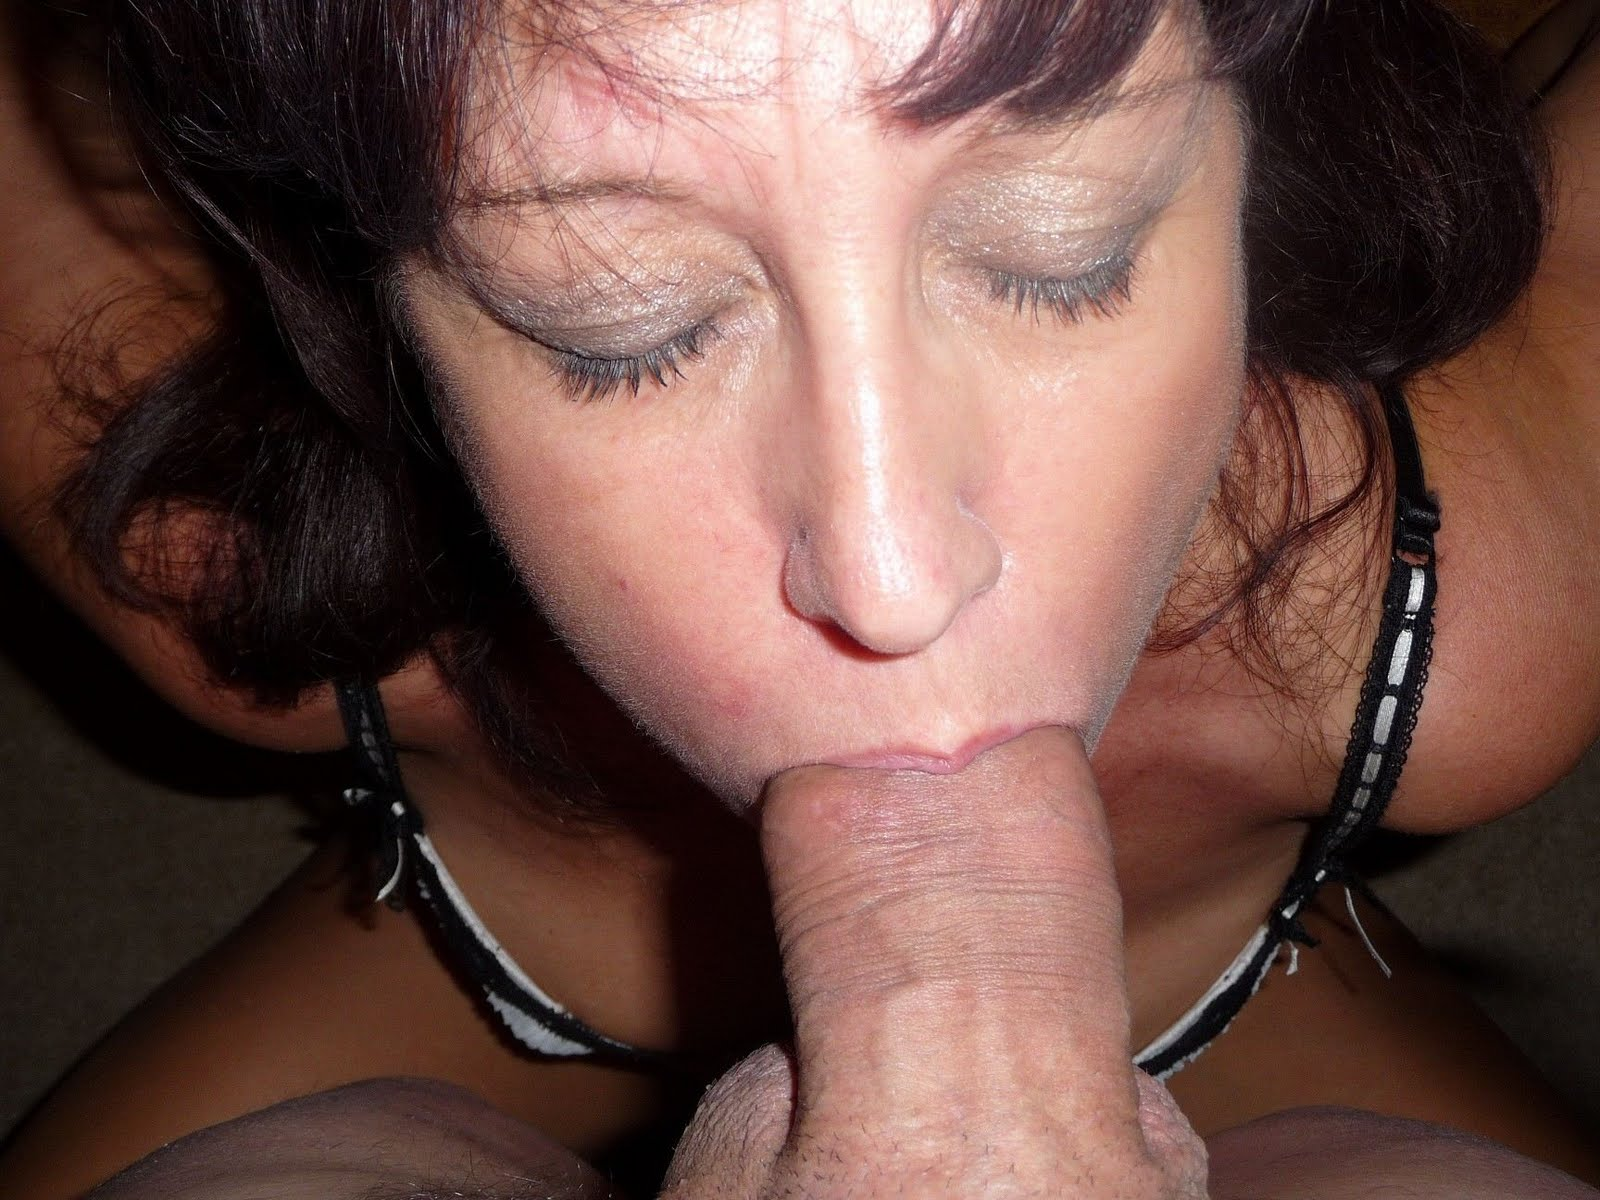 Mature woman deep throat wish she'd